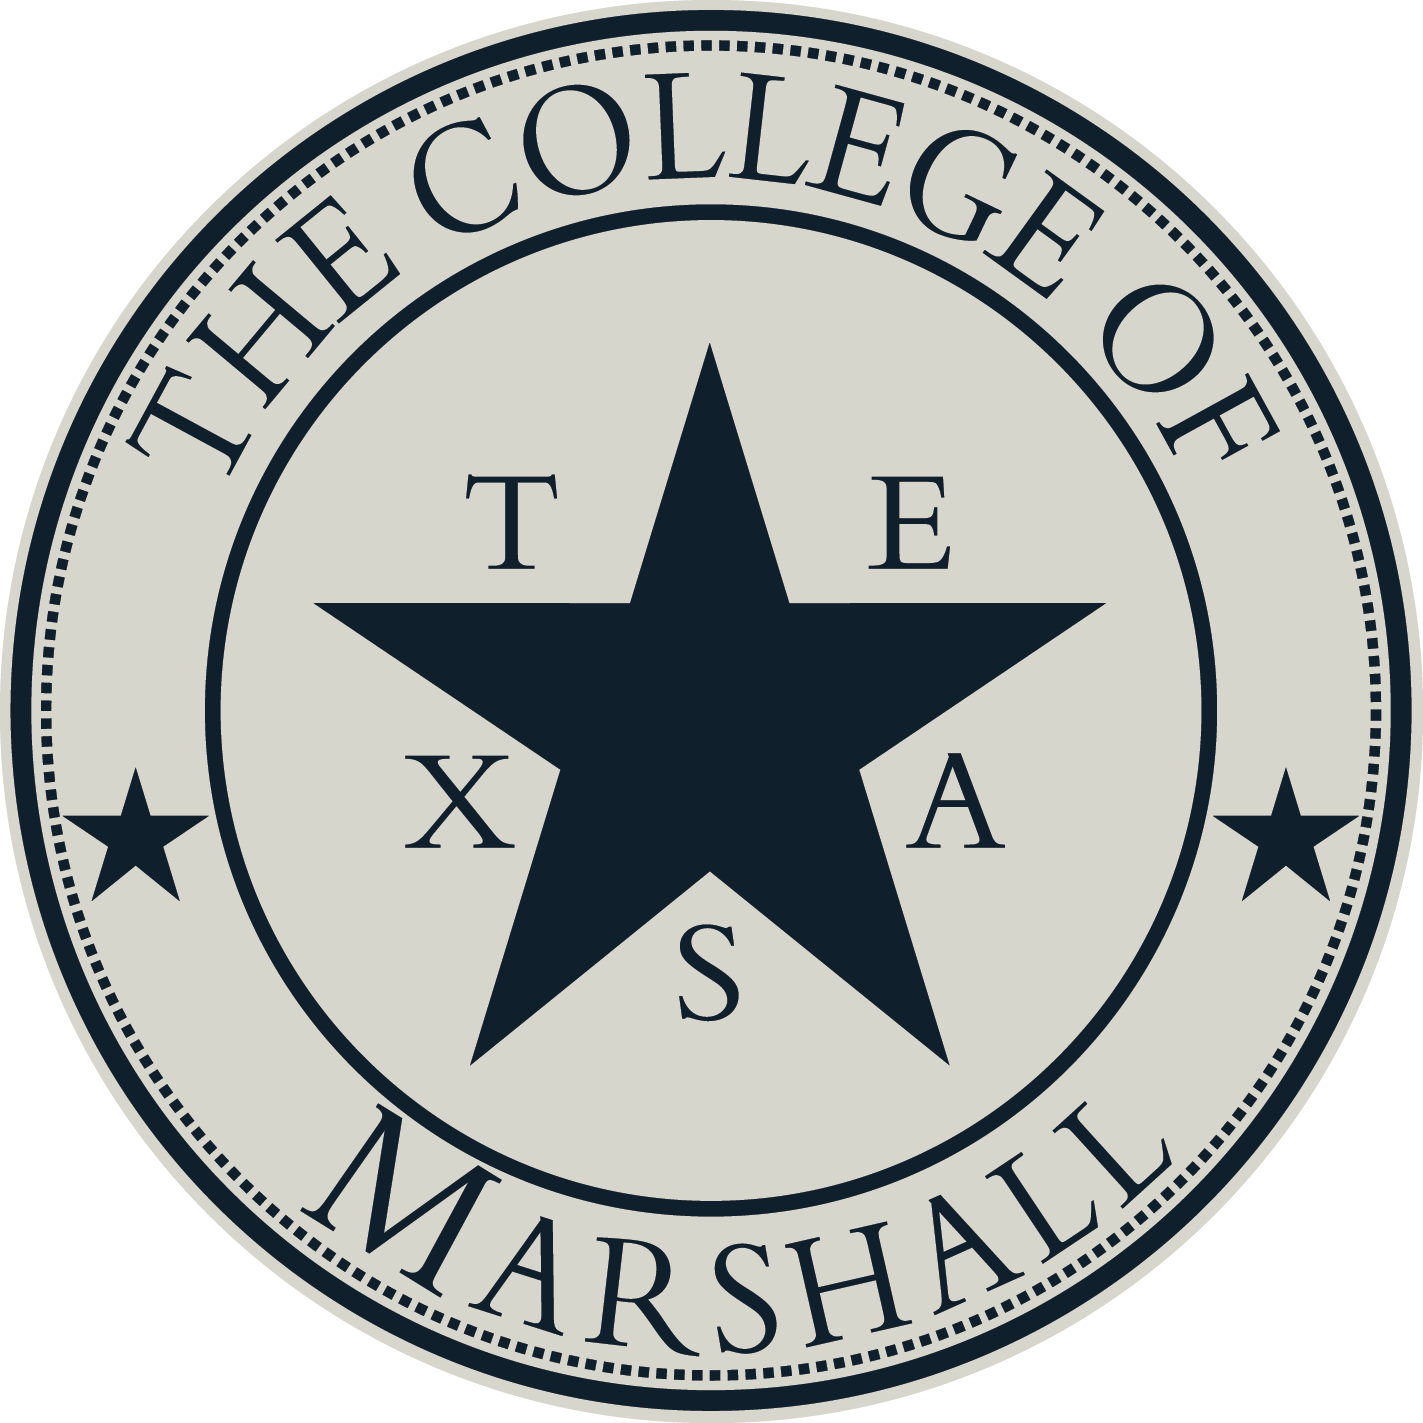 College of Marshall seal